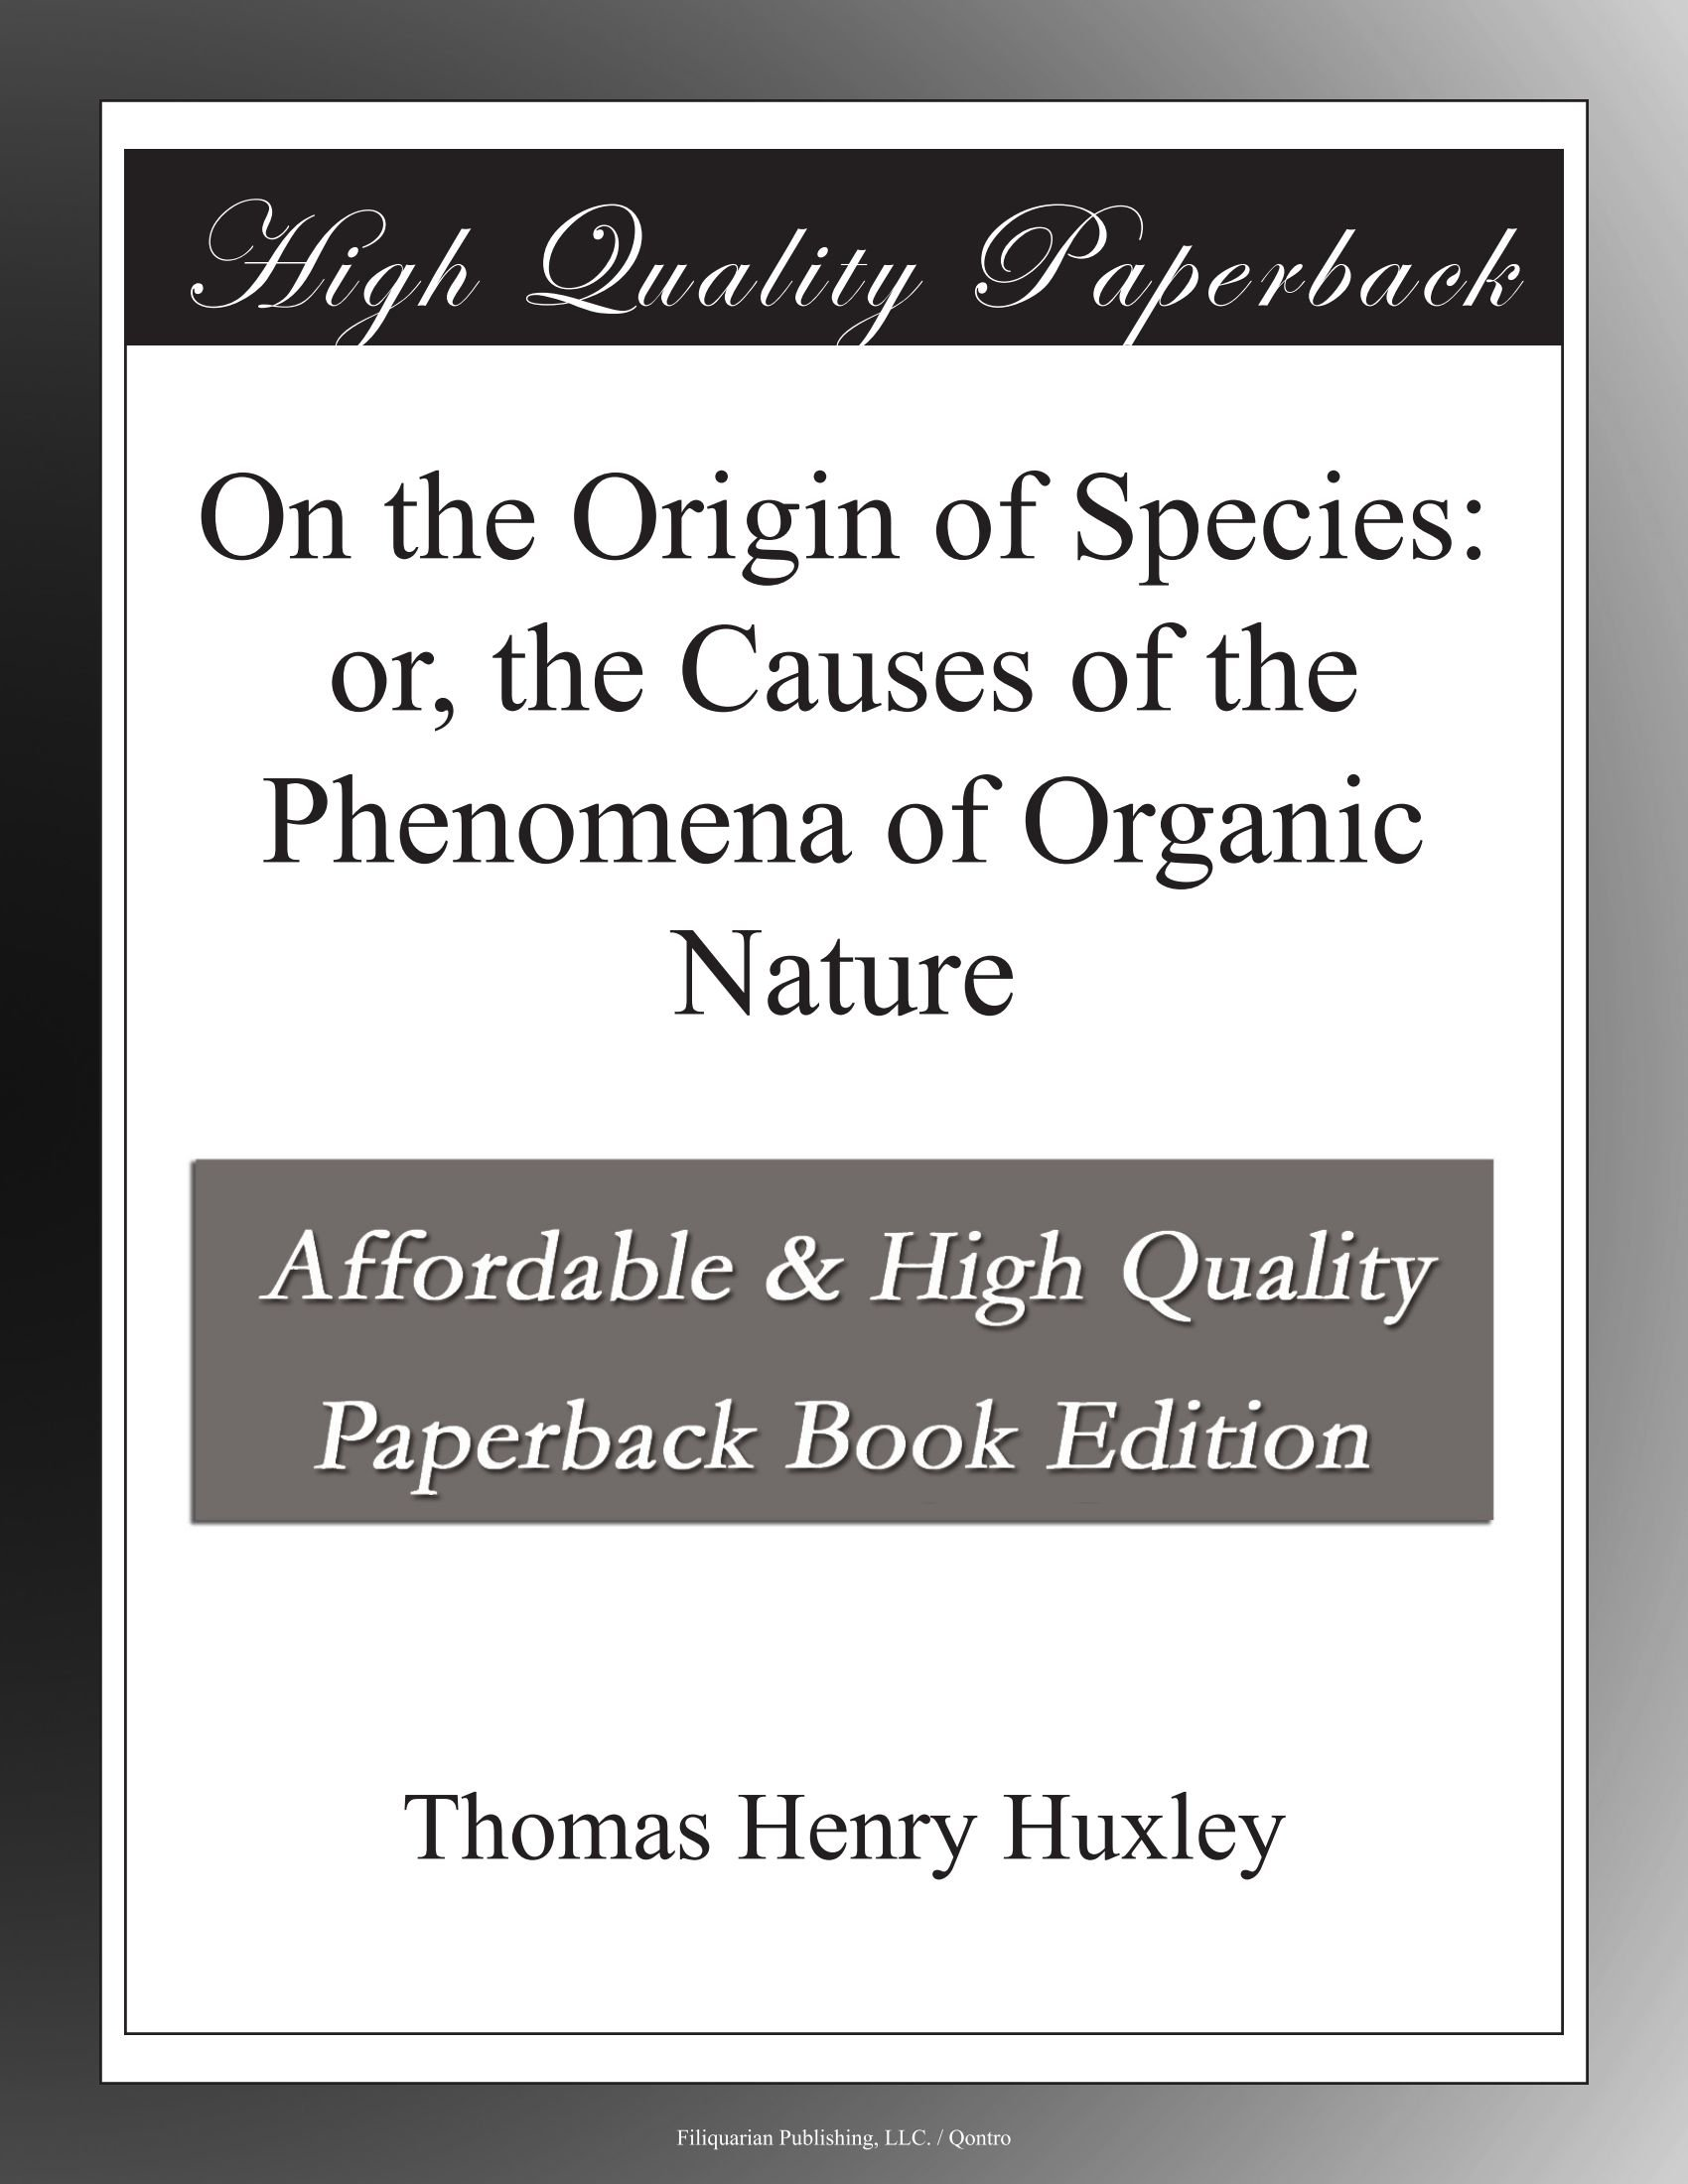 On the Origin of Species: or, the Causes of the Phenomena of Organic Nature PDF